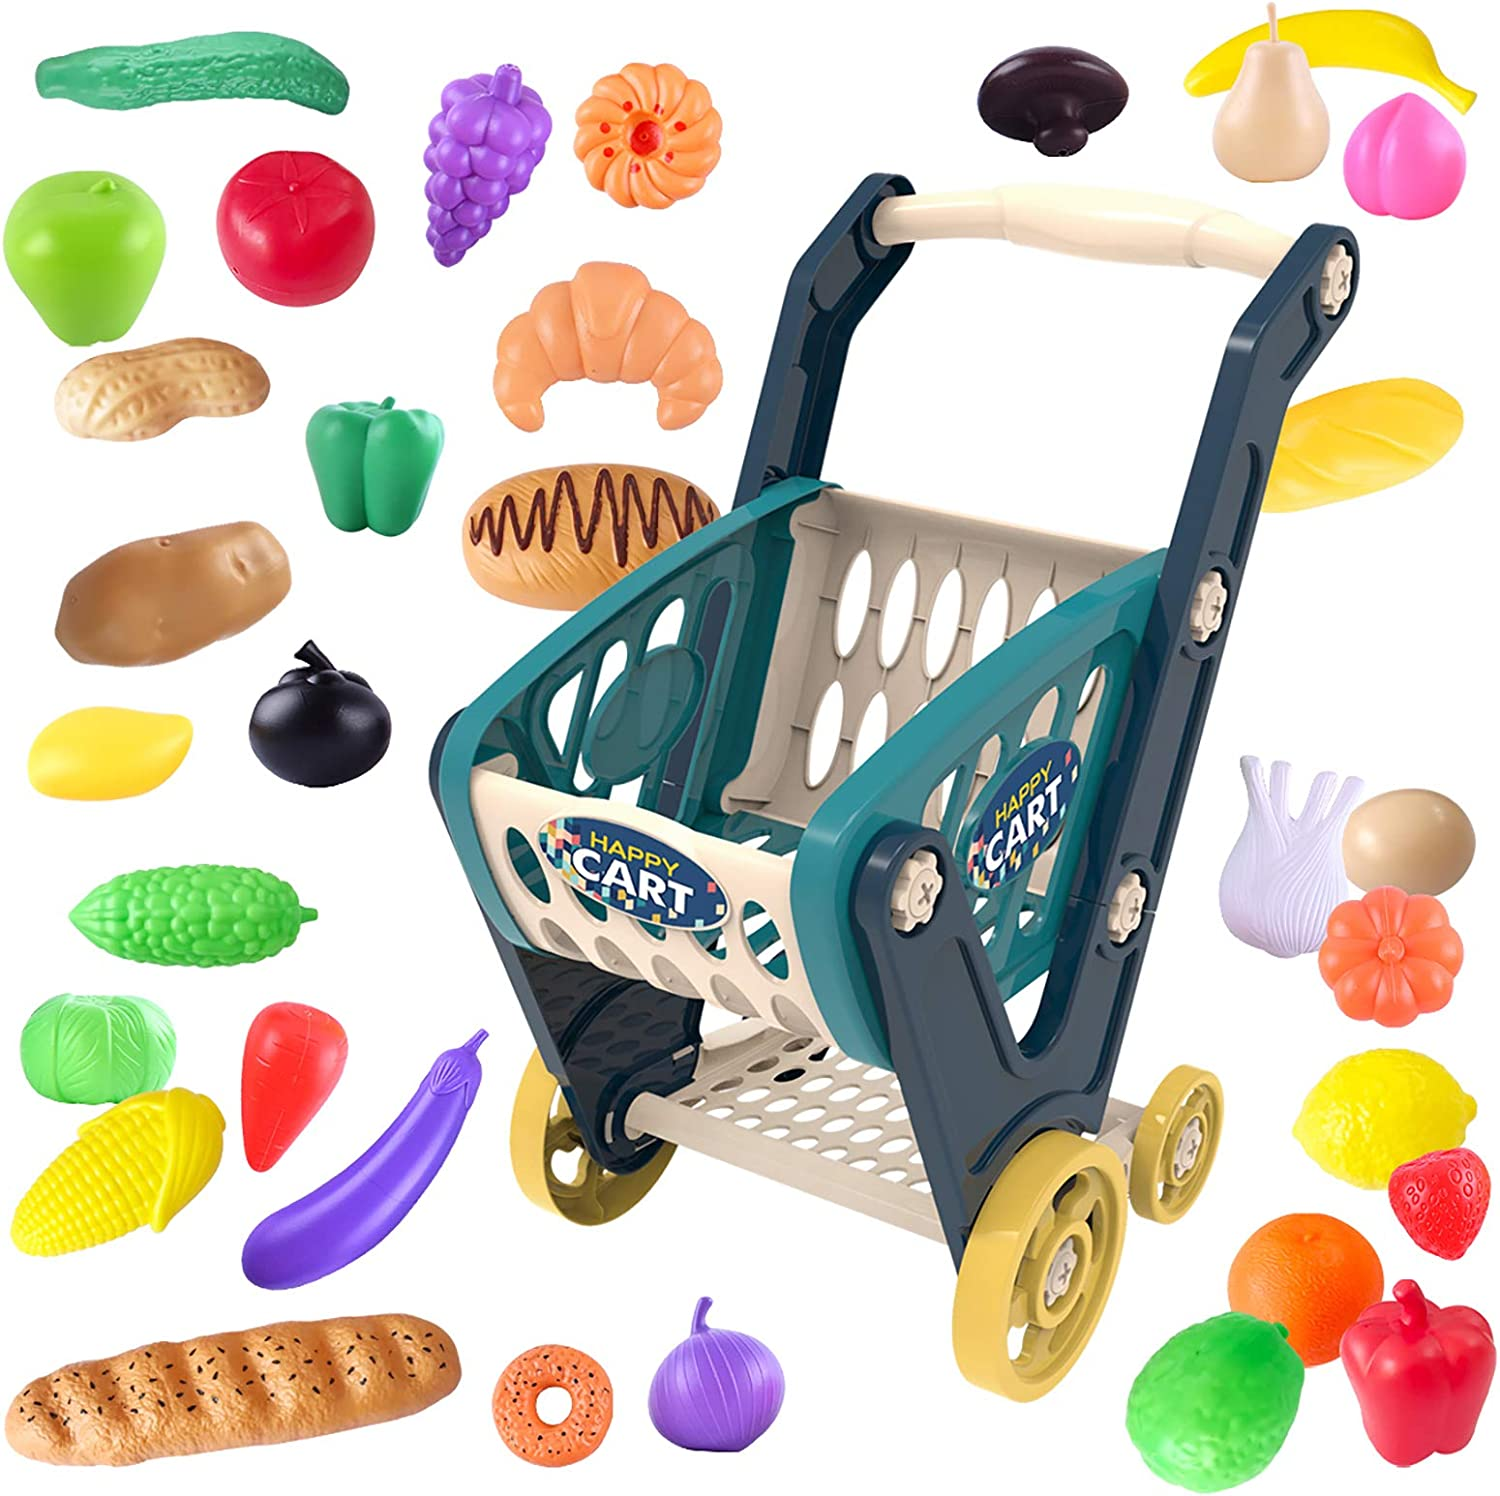 heruo Shopping Cart Toy Genuine Free Shipping for Supermarket Mini F Kids Grocery Tucson Mall